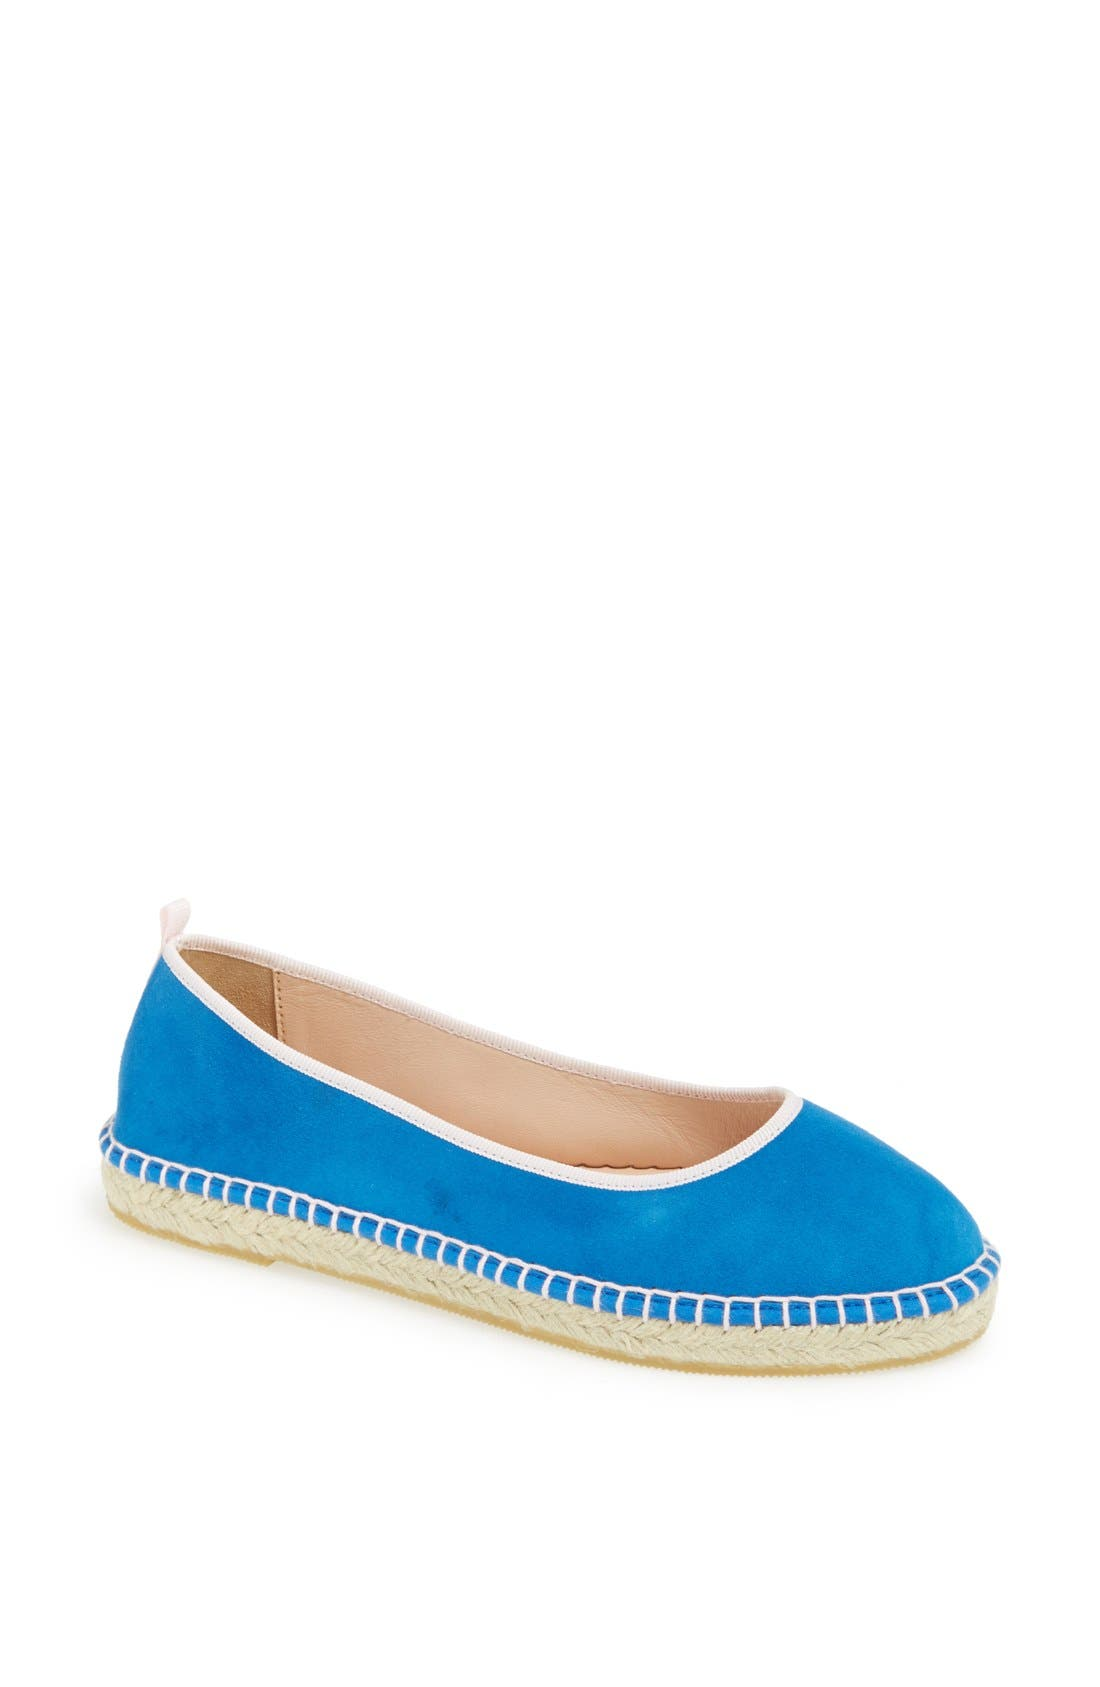 Main Image - SJP 'Billie' Suede Flat (Nordstrom Exclusive)